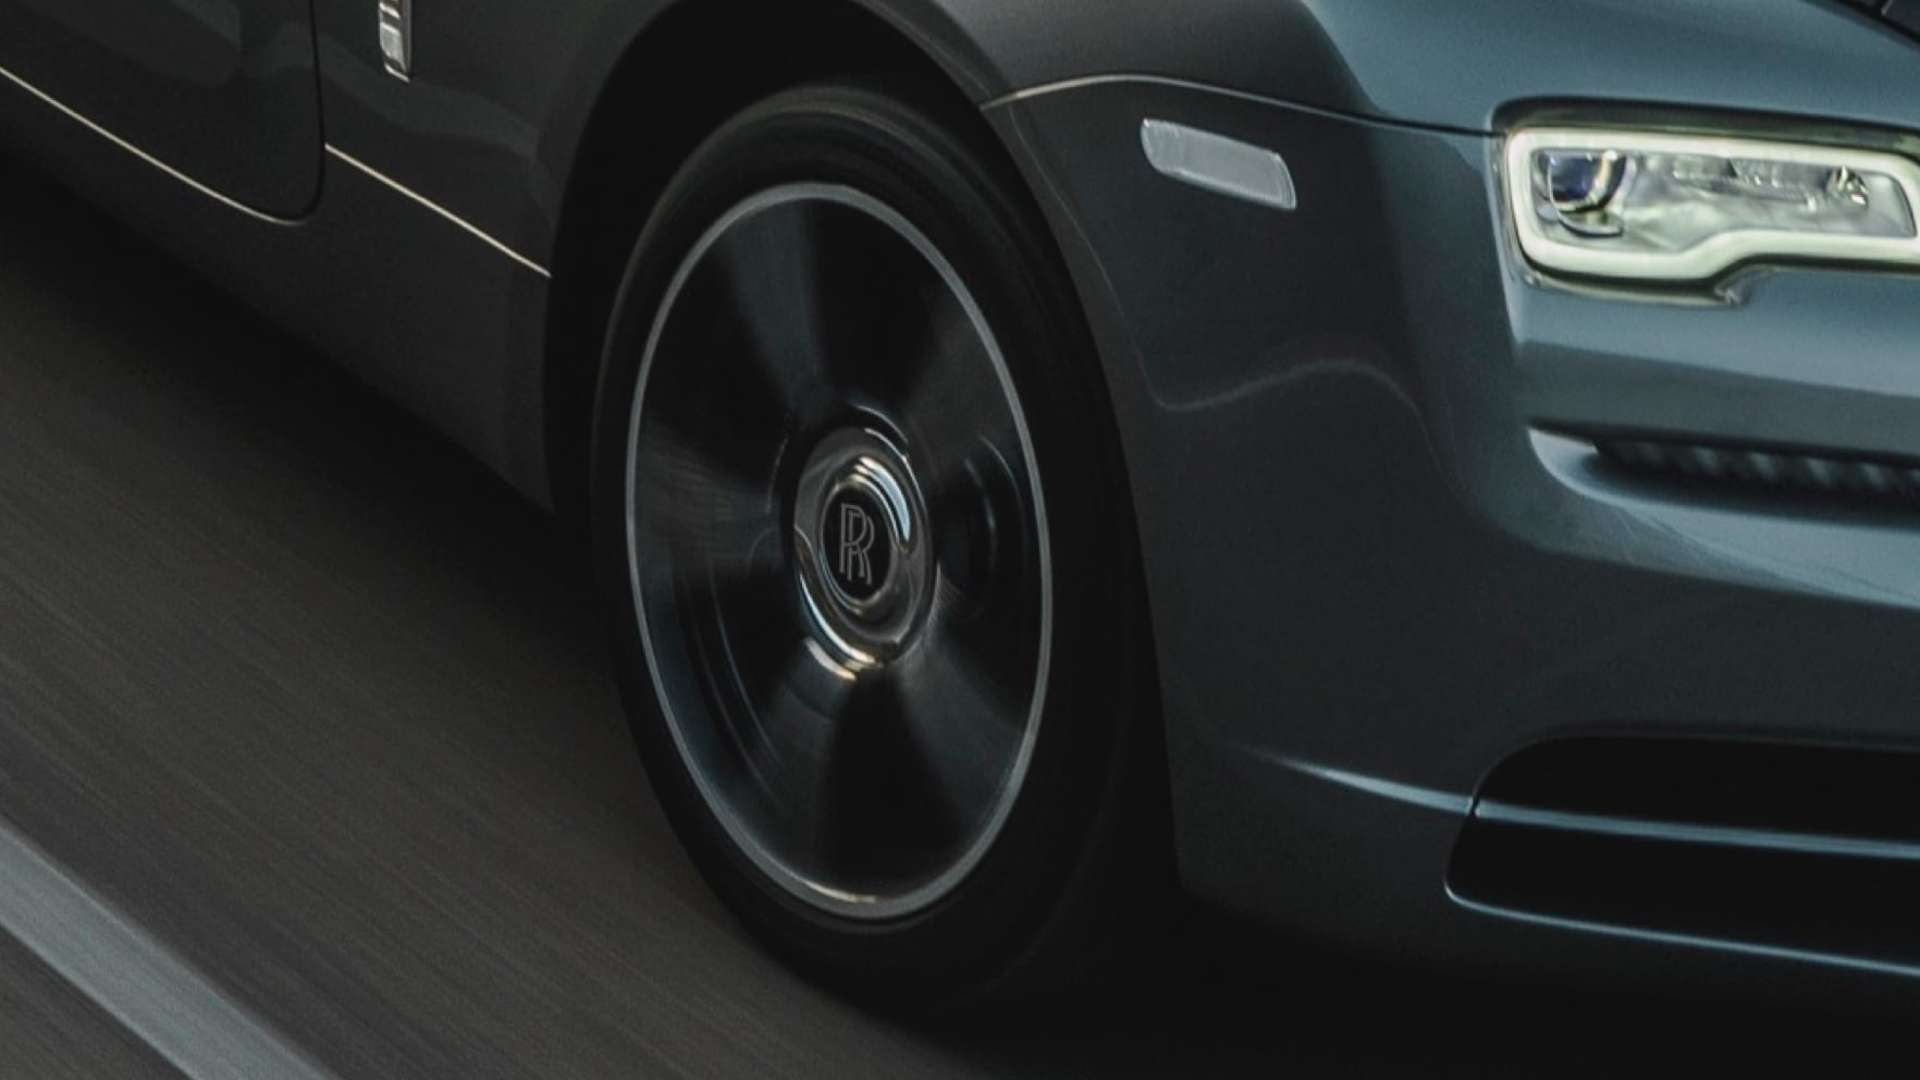 Rolls-Royce Wraith close up of side wheel and left front light, on the road